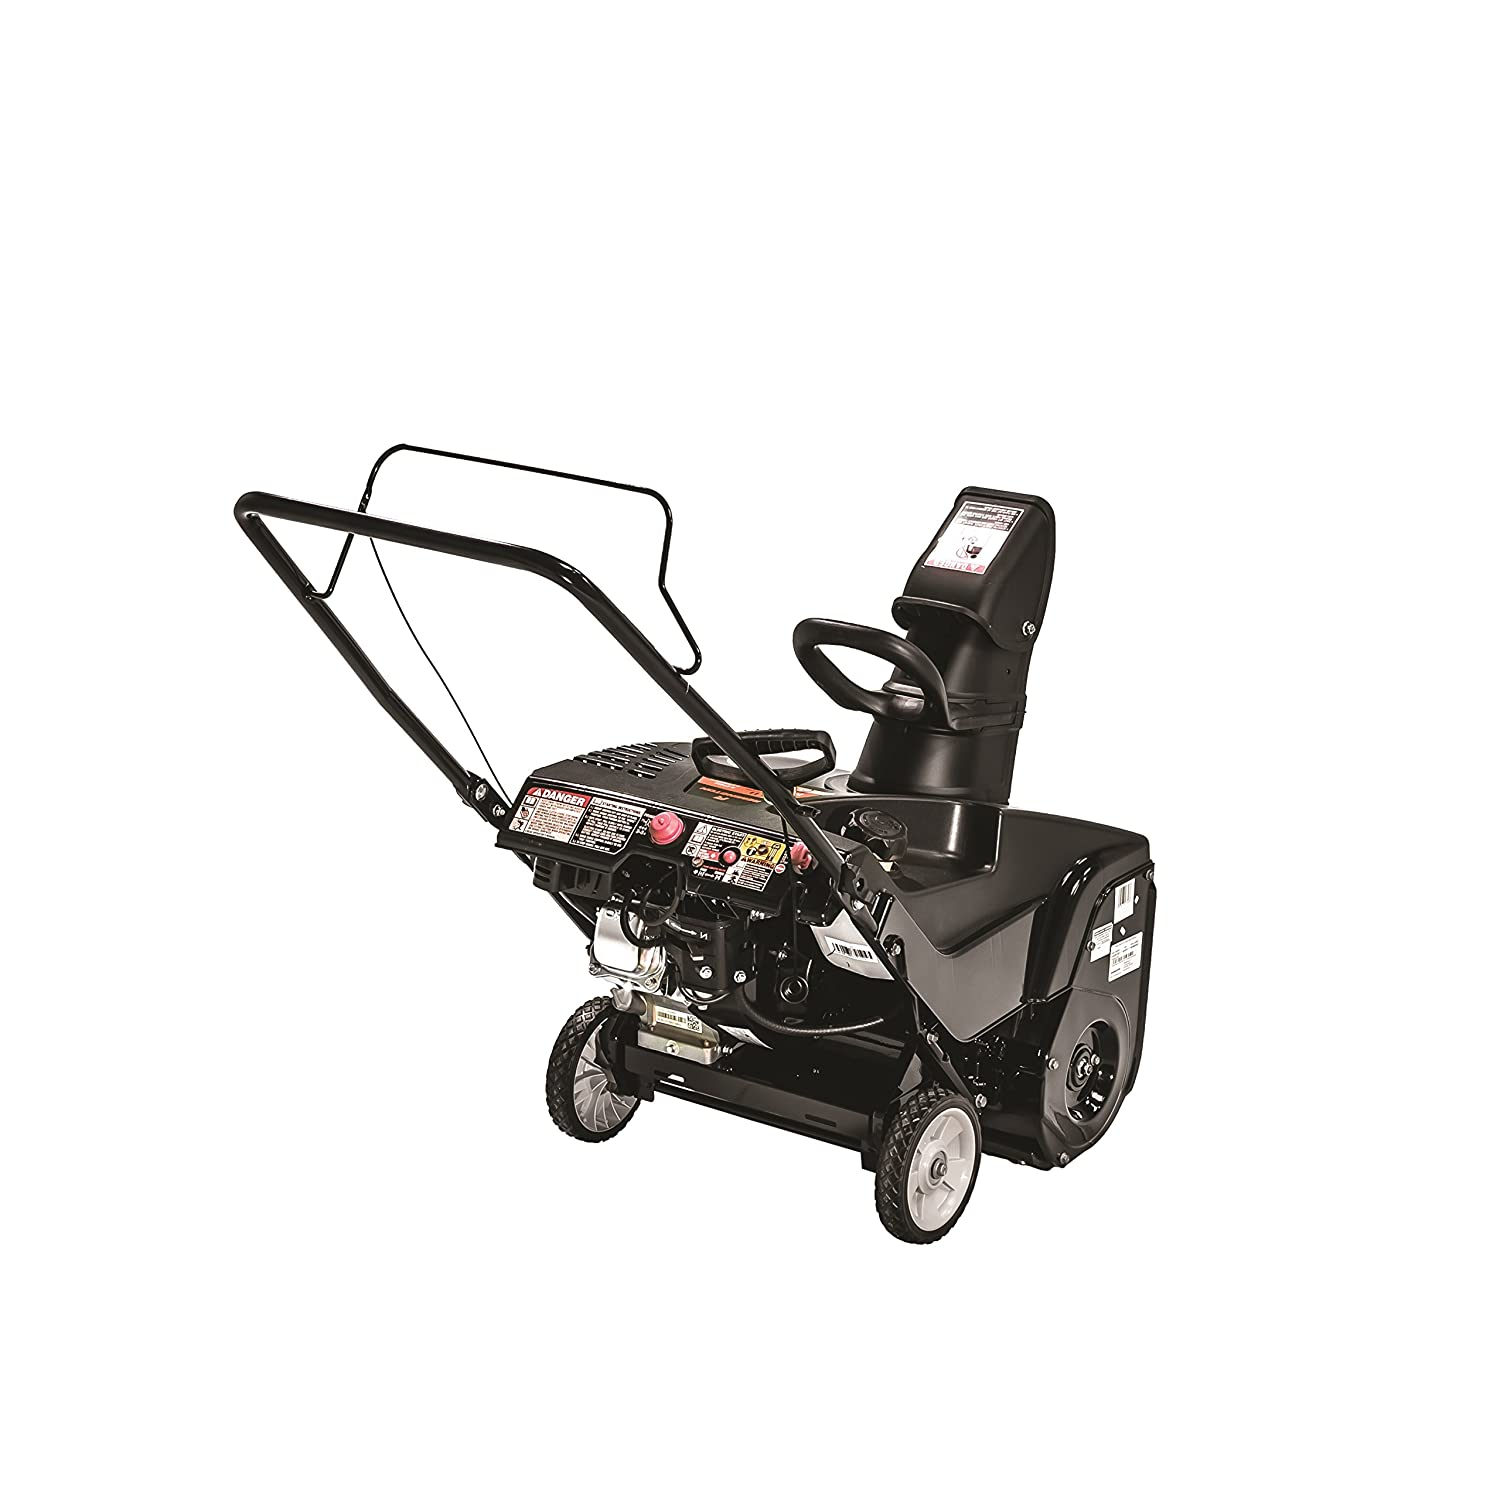 remington 22 179cc two stage gas snow blower review